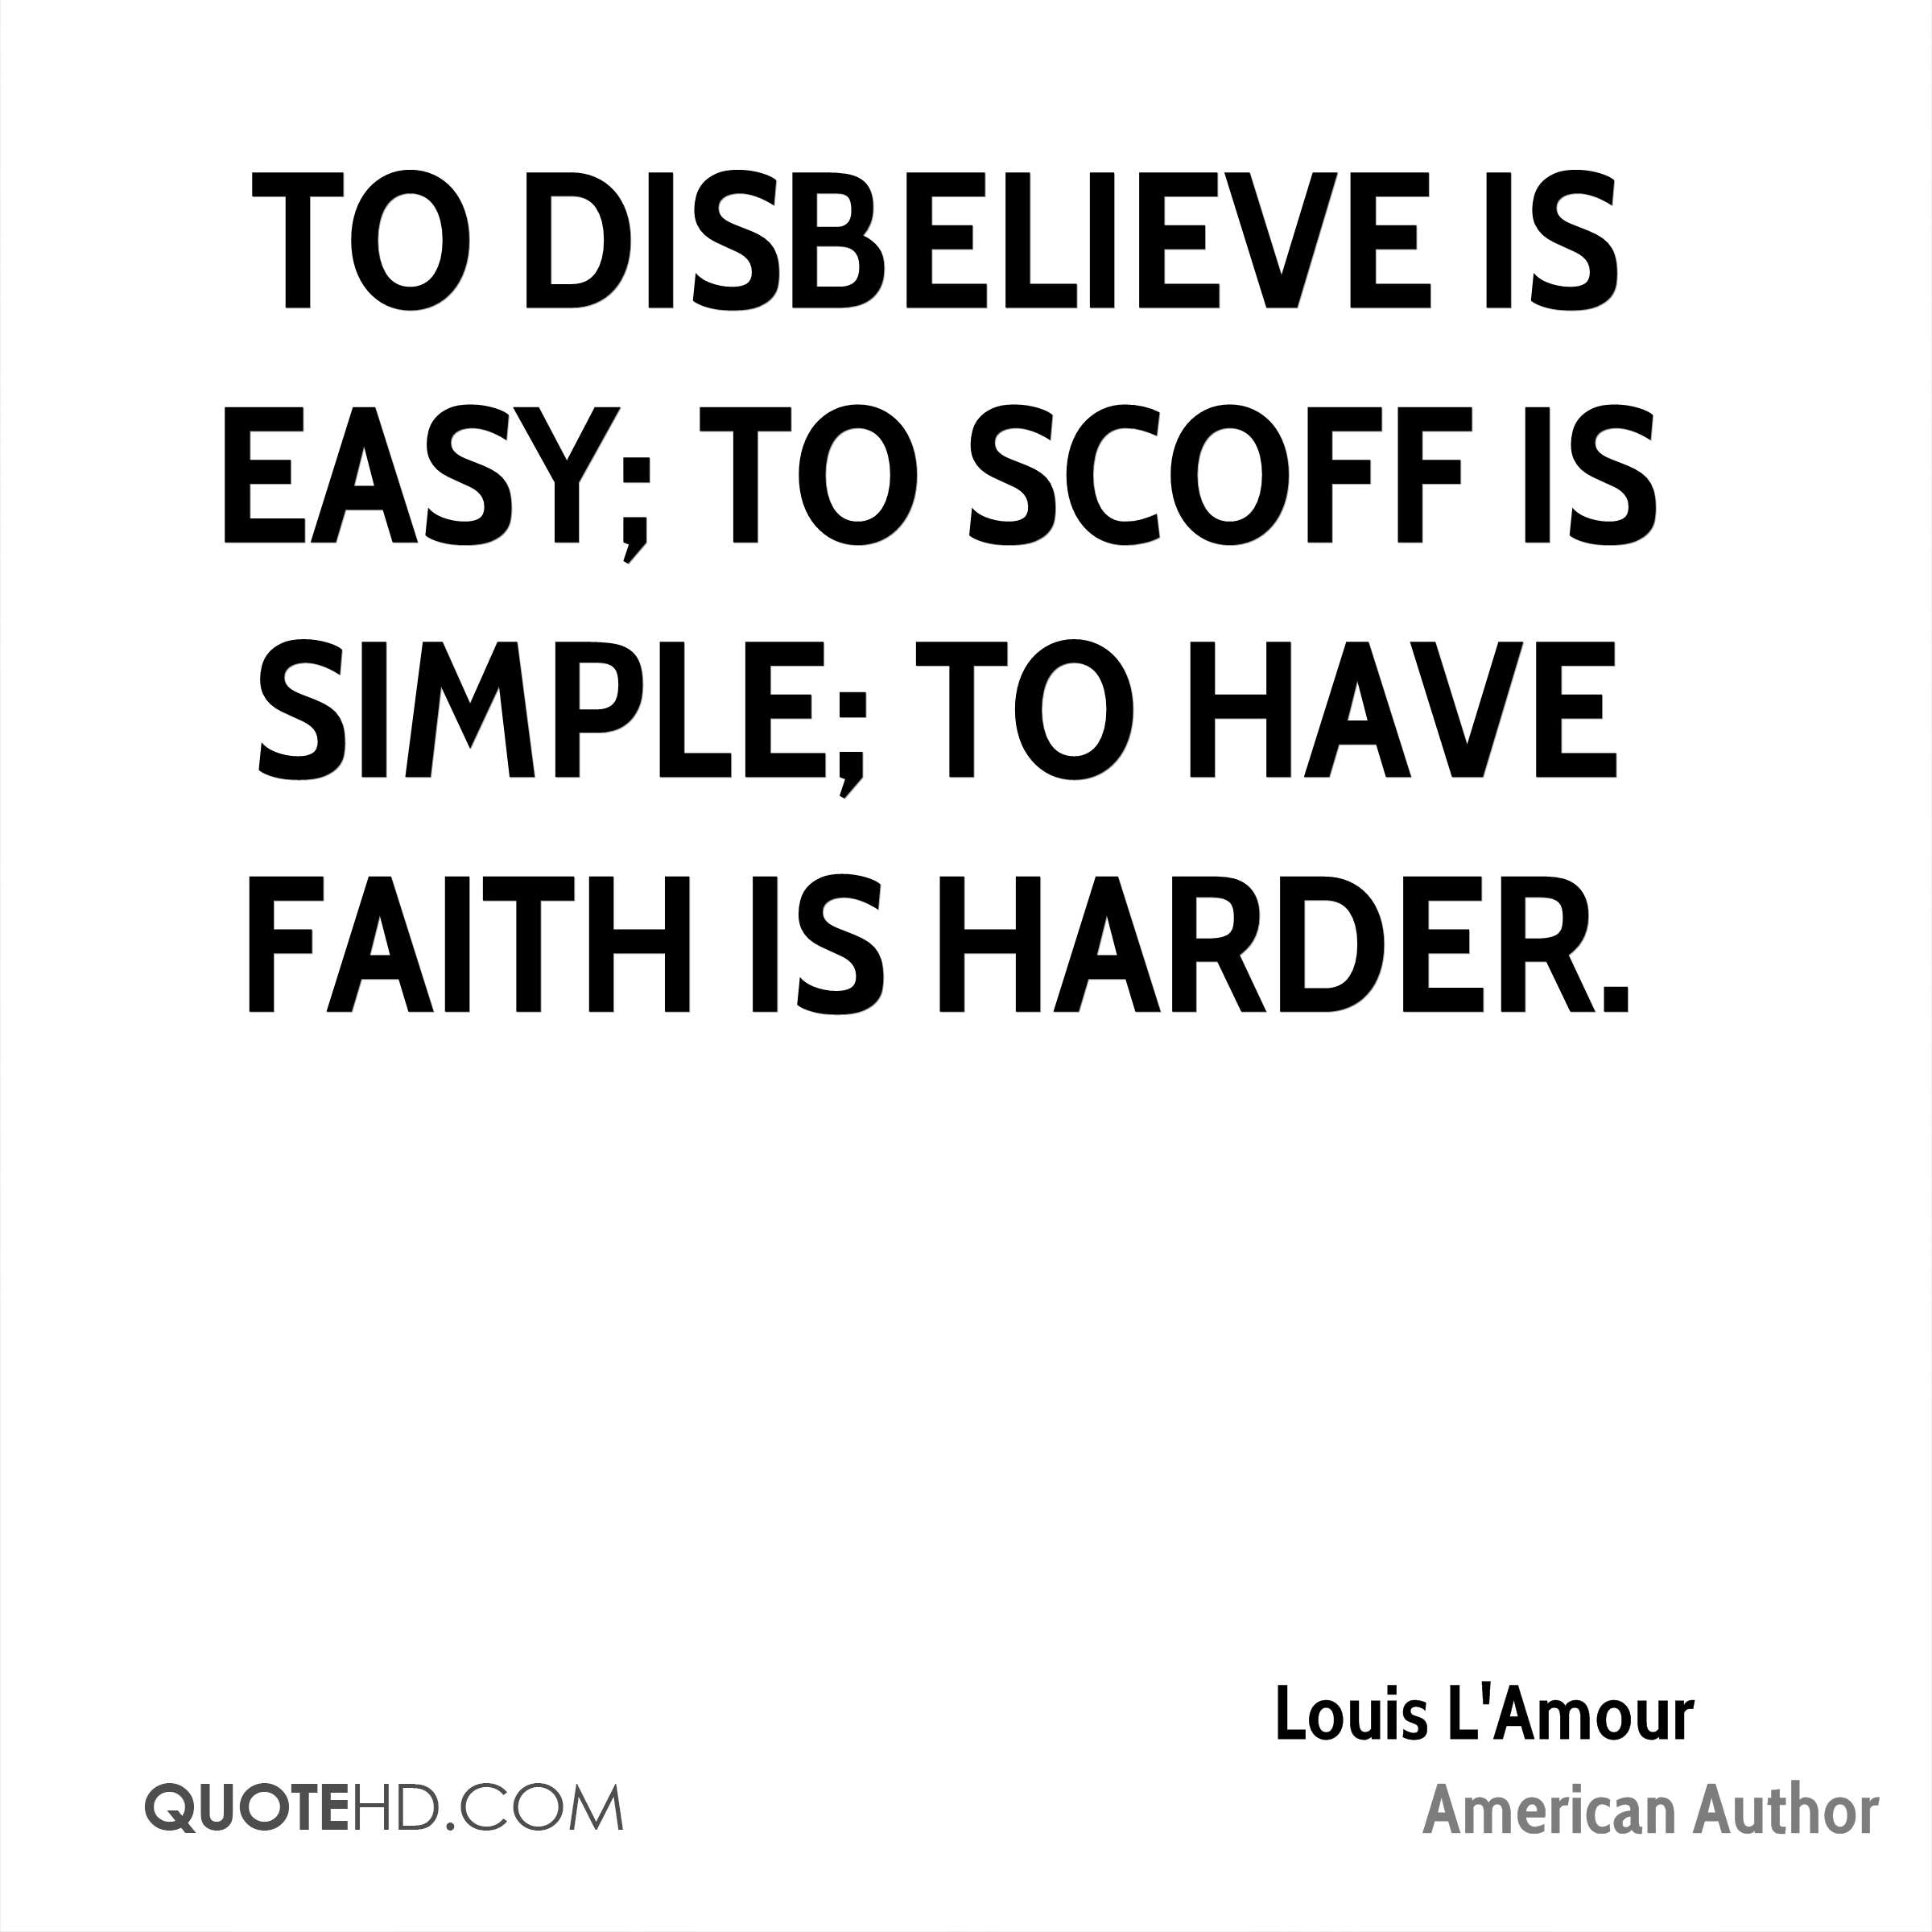 To disbelieve is easy; to scoff is simple; to have faith is harder.